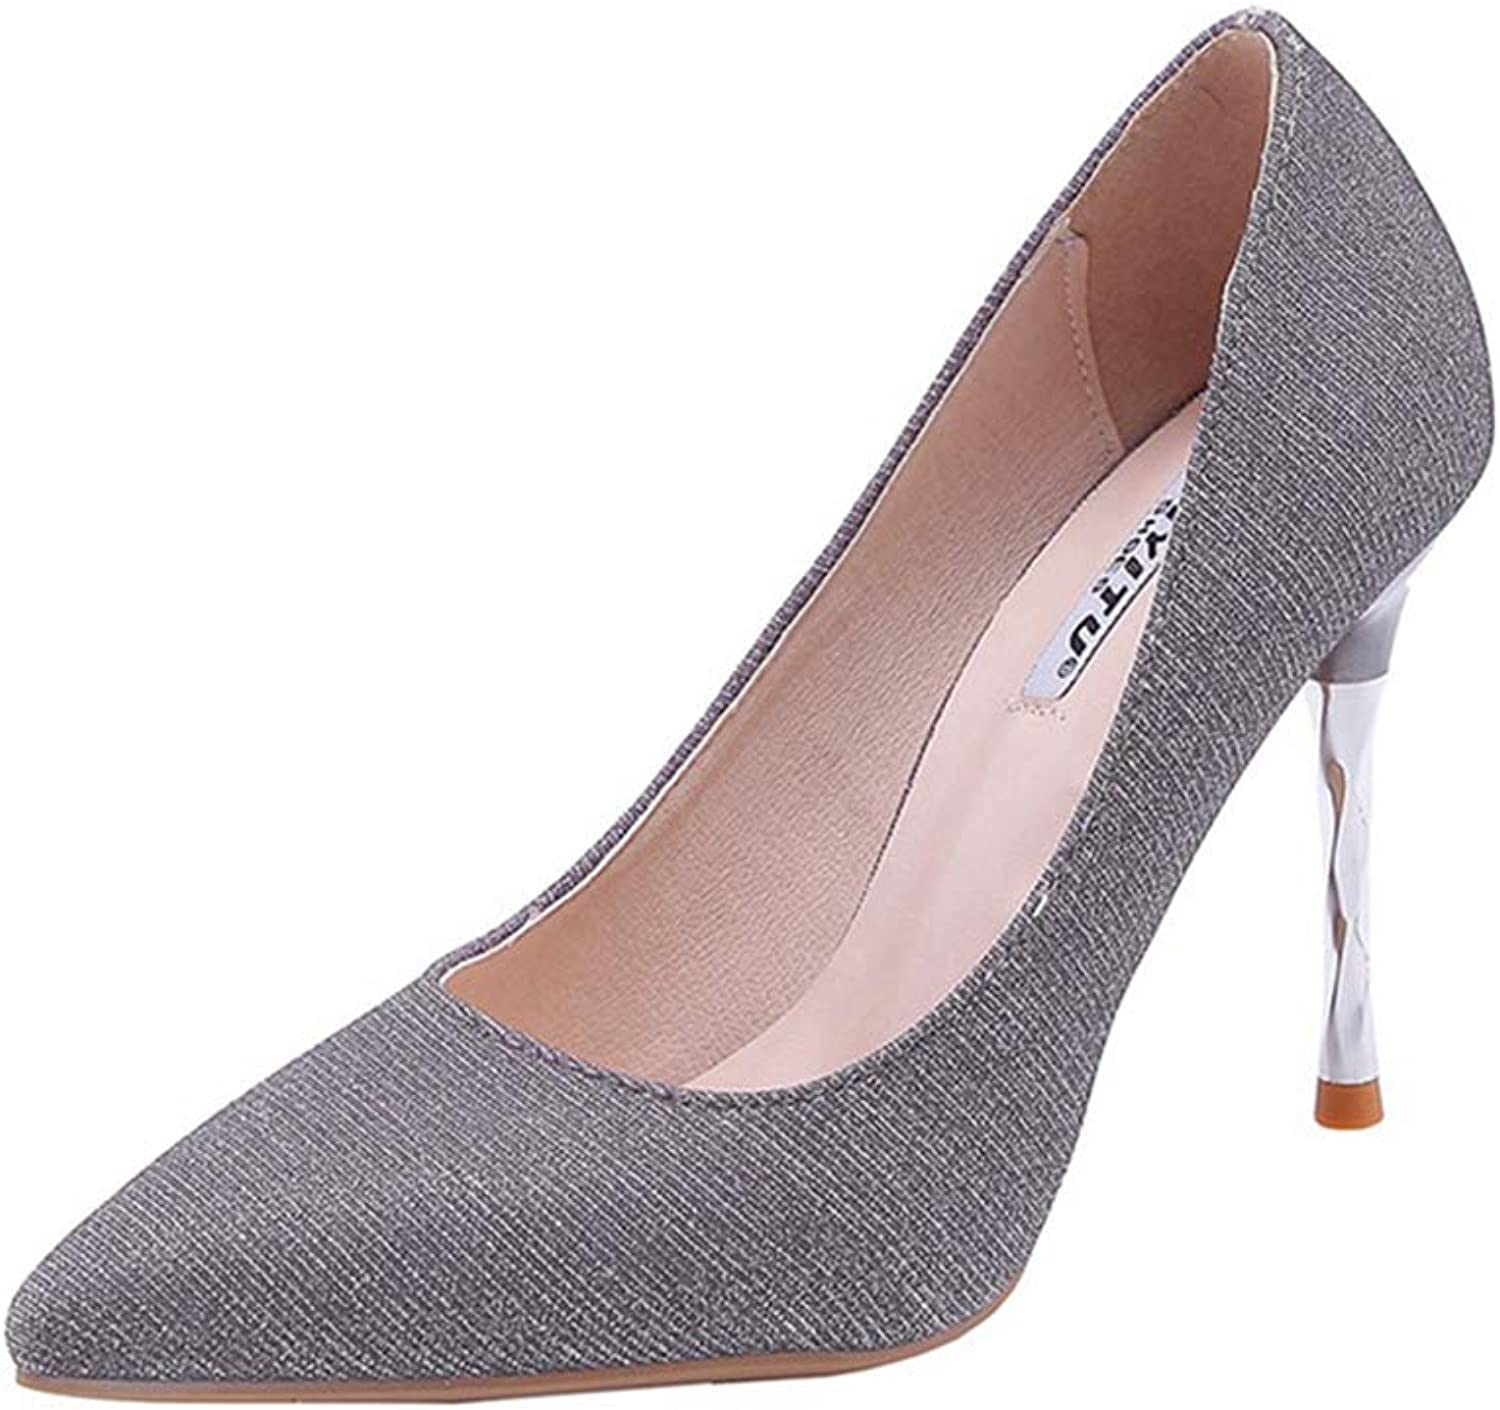 Sam Carle Womens Pink Pumps,Autumn Pointed Toe 9CM Thin Heel Slip-on Elegant Party Wedding shoes